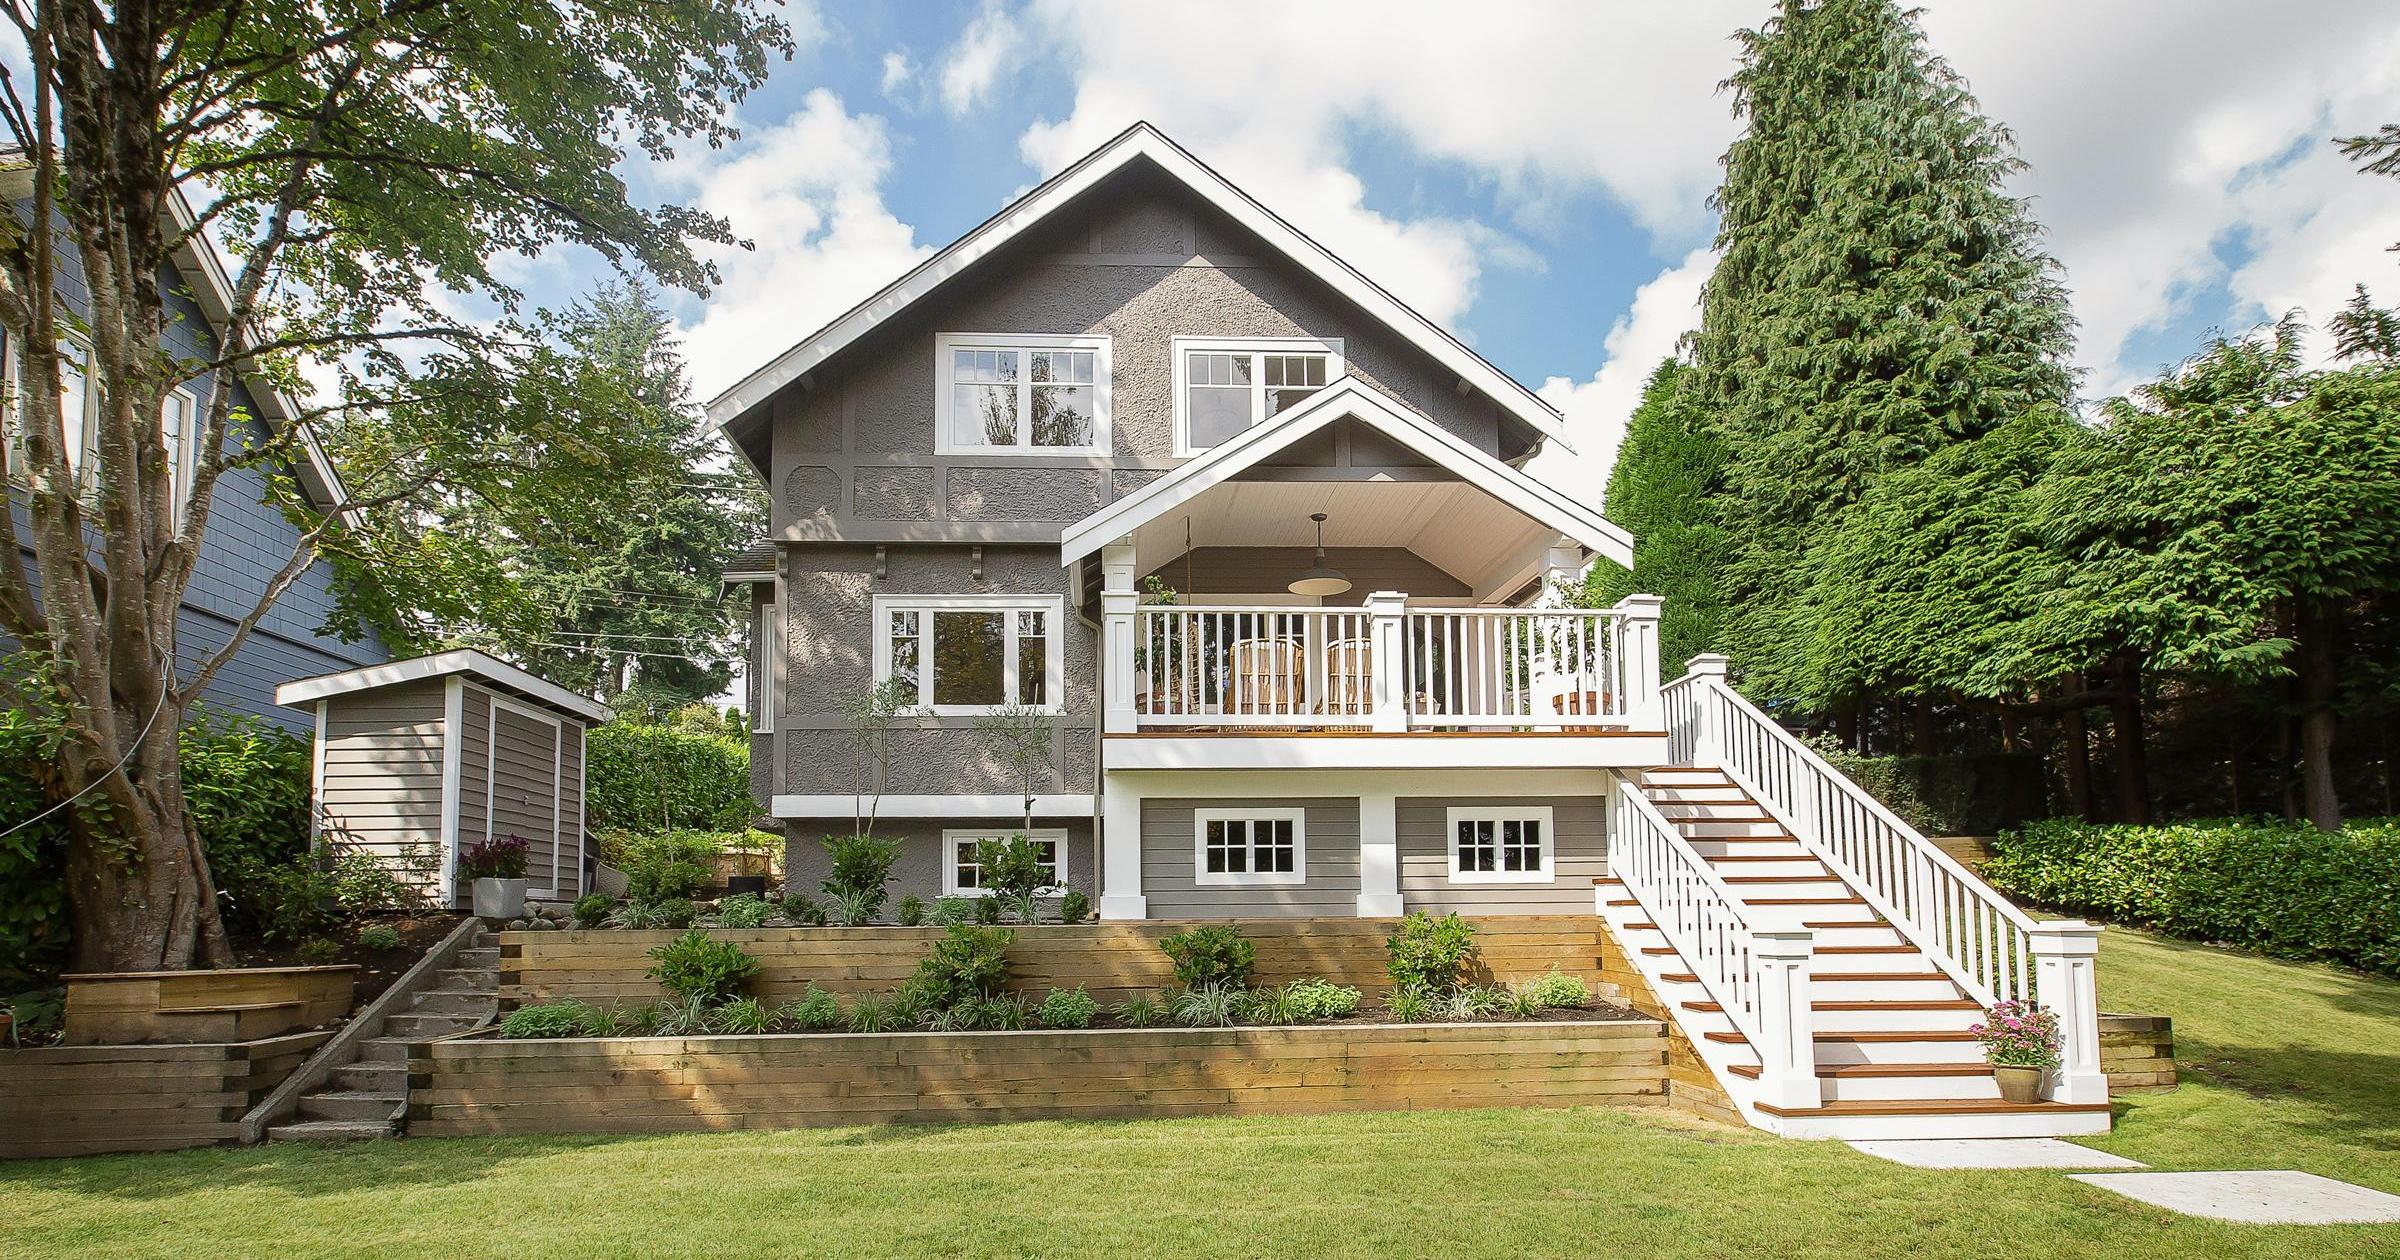 1094 W 19th Street, Pemberton Heights, North Vancouver